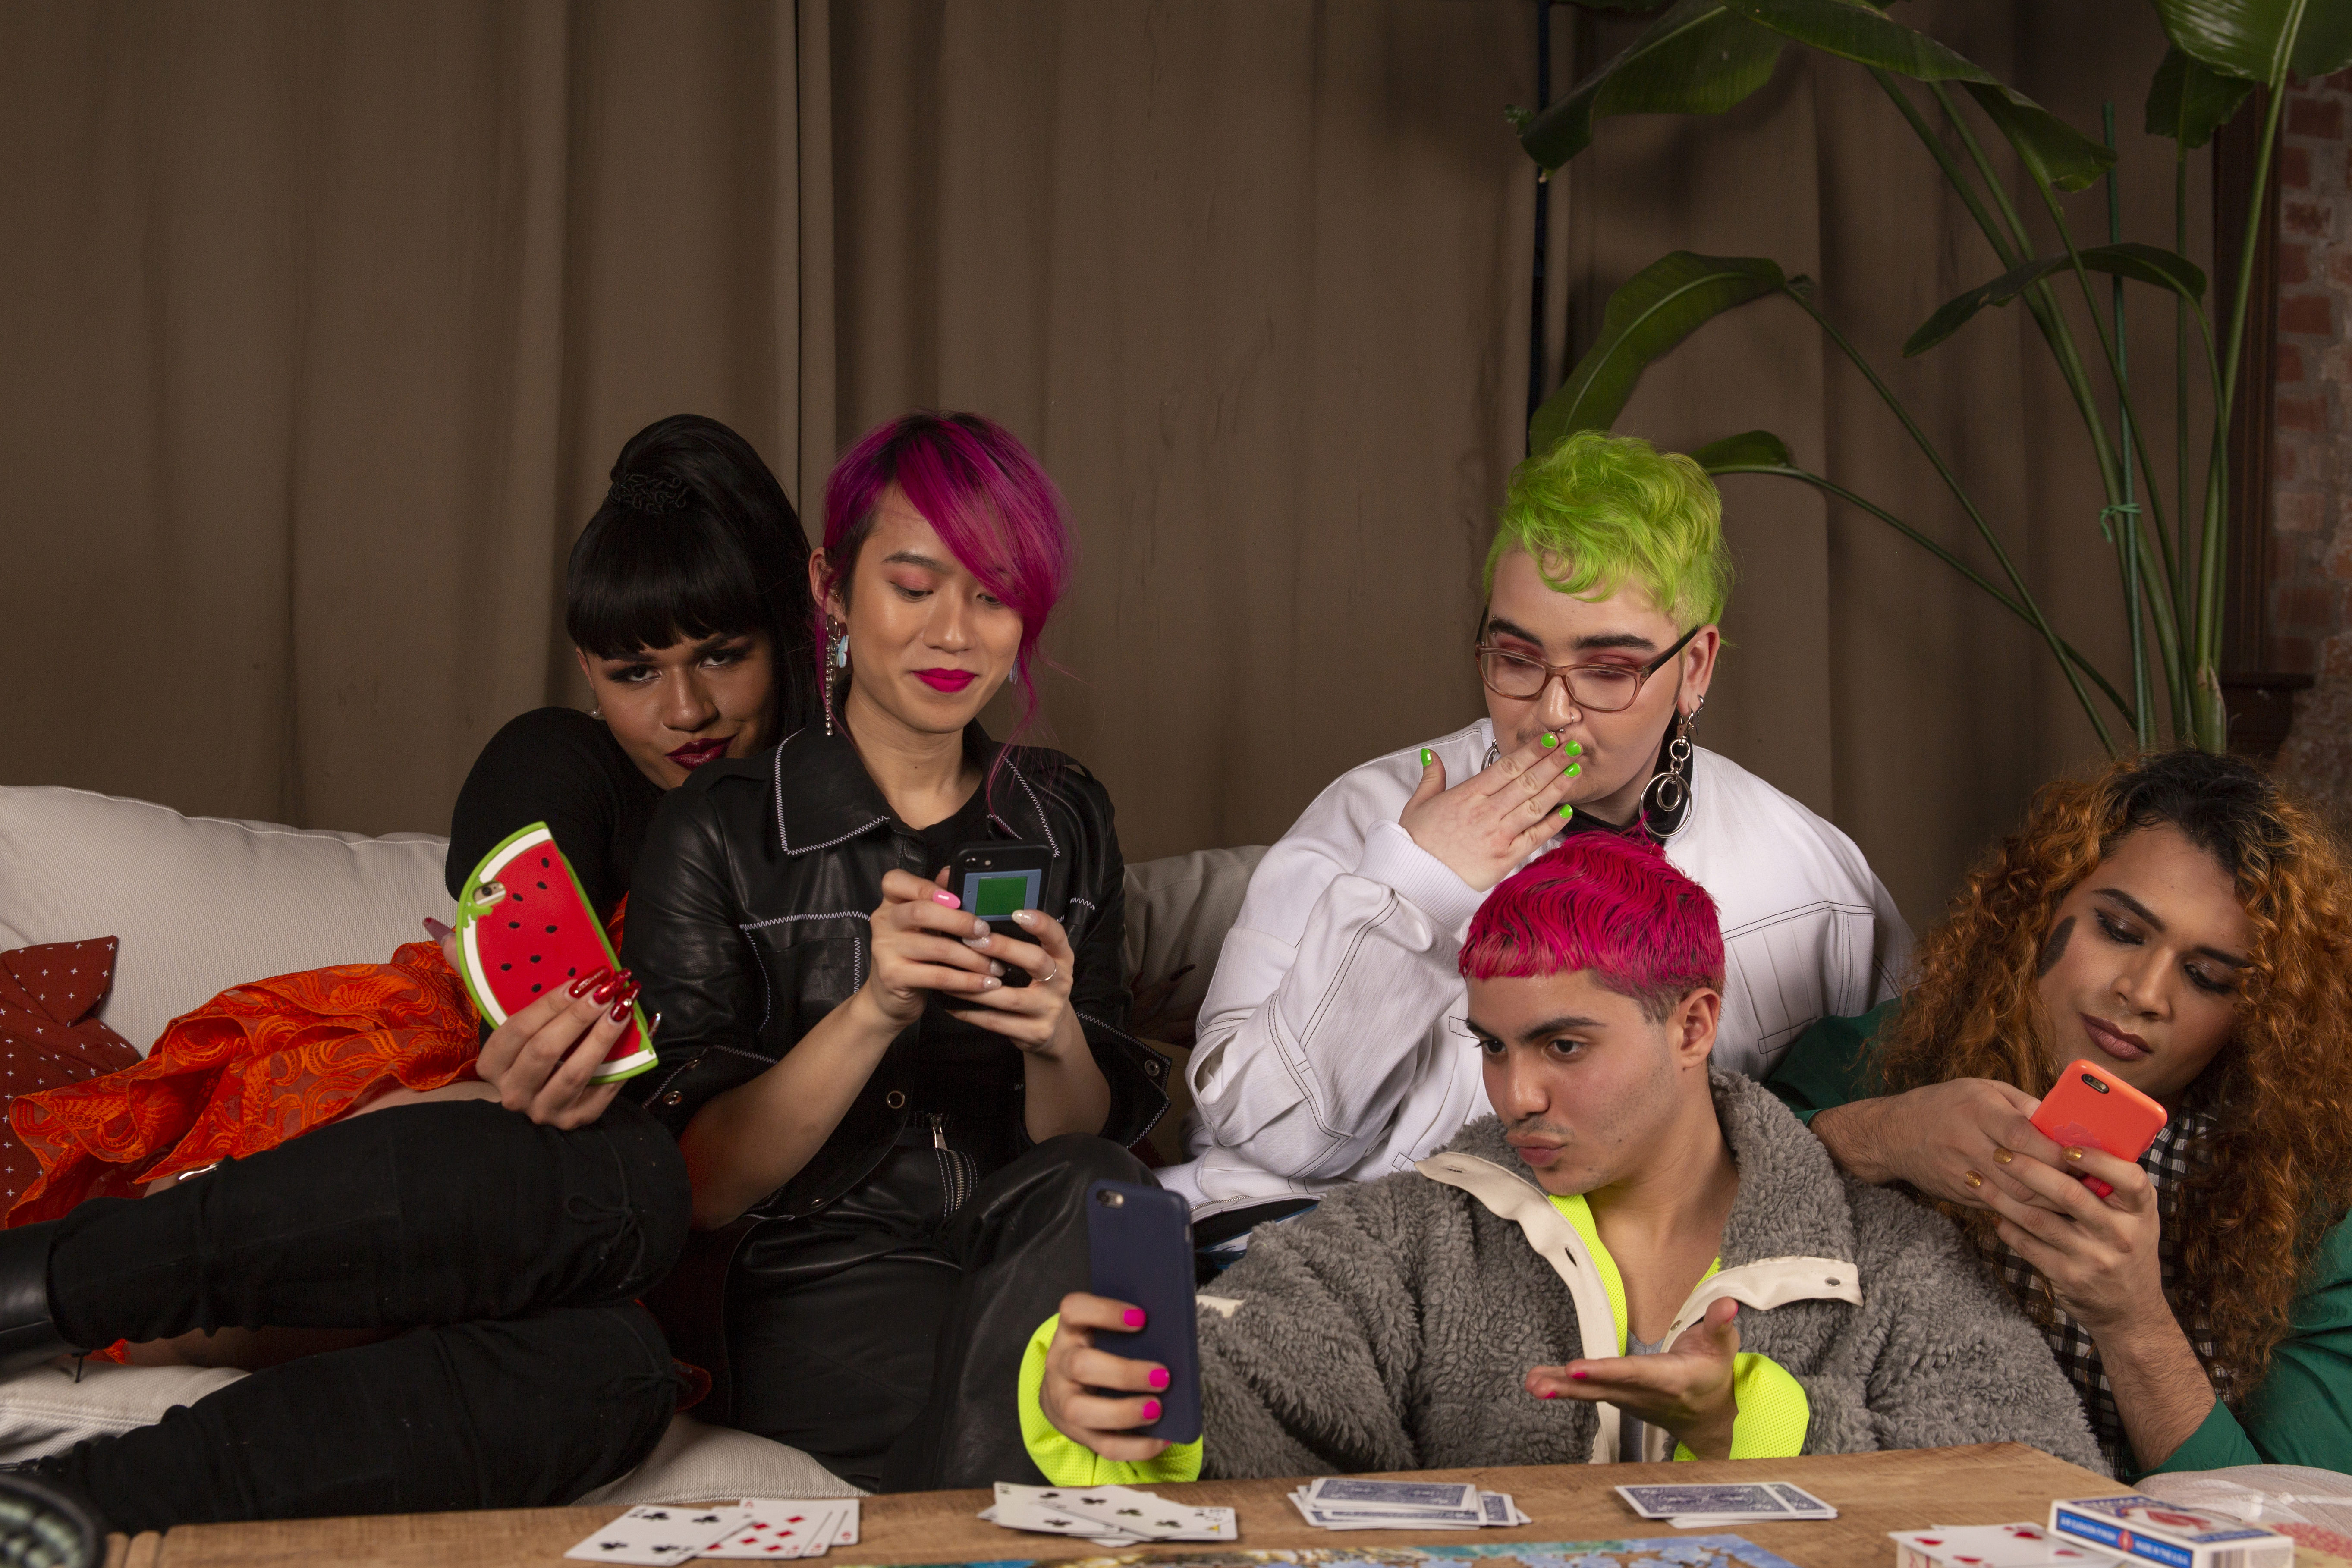 A group of friends of varying genders and sexualities taking selfies and surfing the net